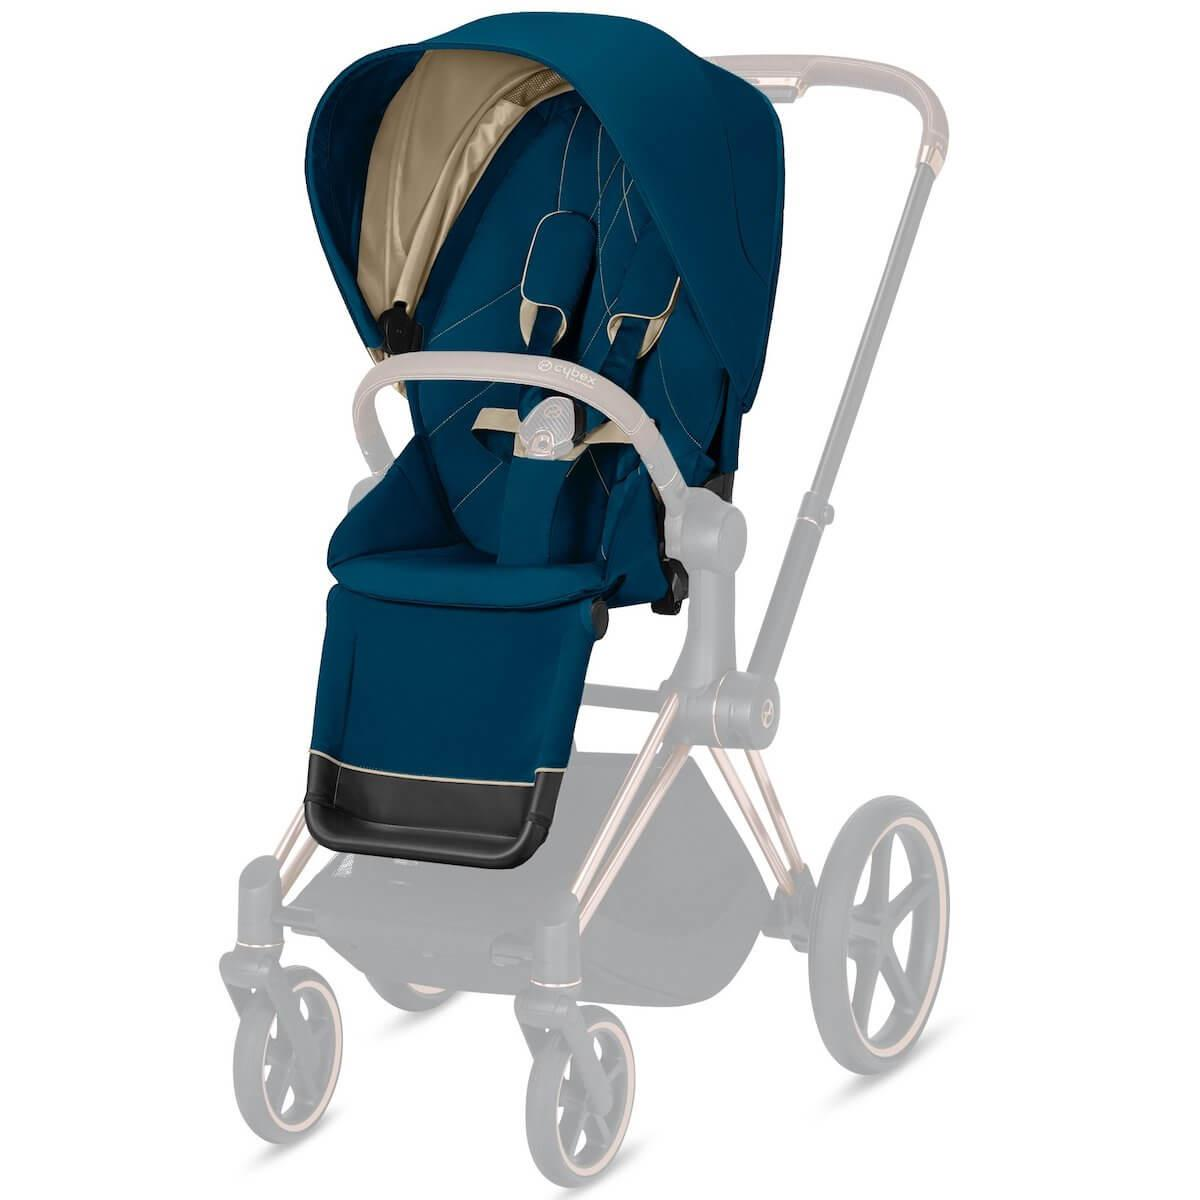 Asiento-pack silla PRIAM Cybex Mountain blue-turquoise